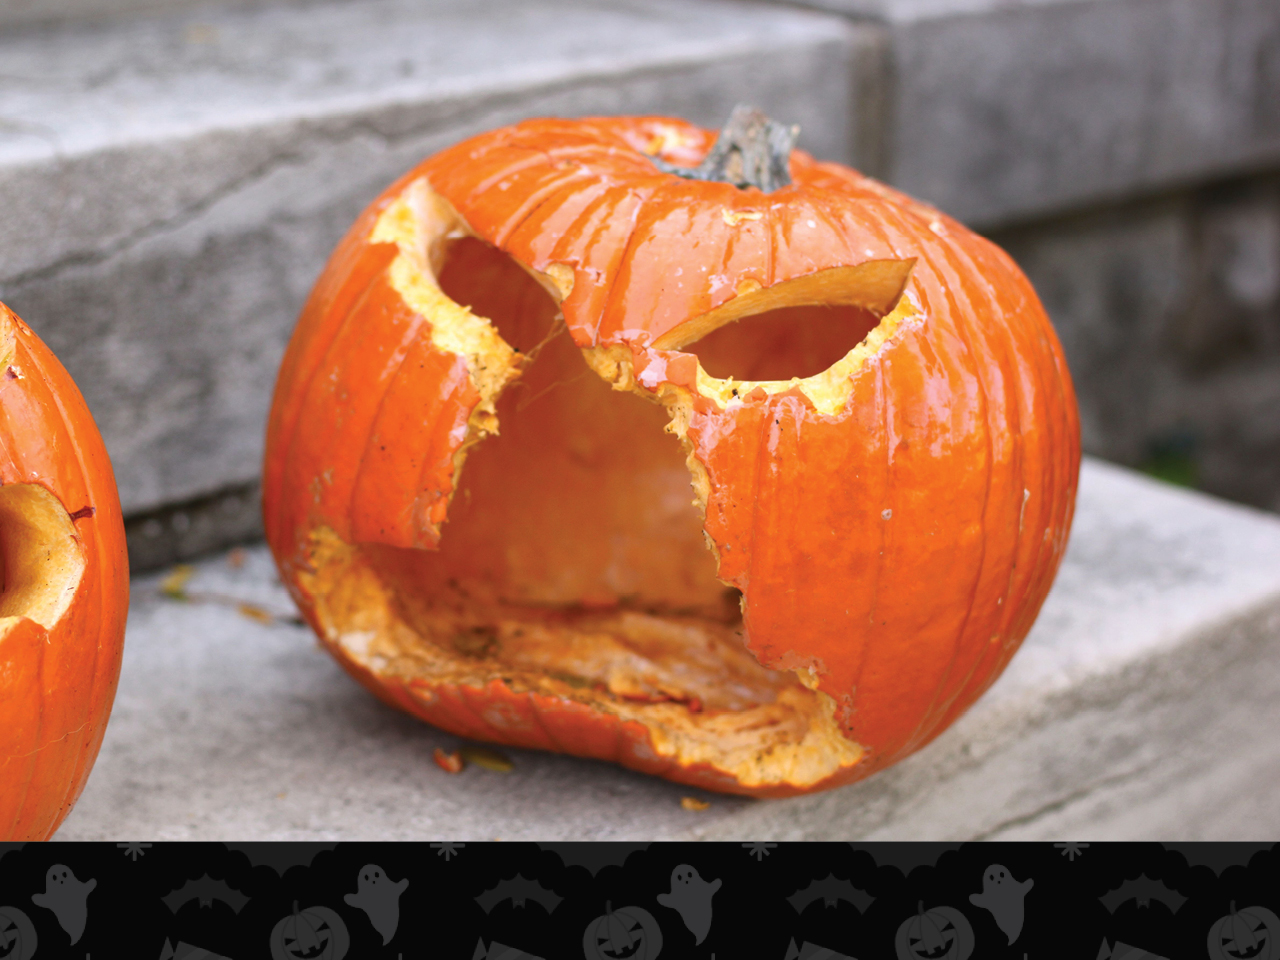 jack o' lantern with face eaten away by squirrels